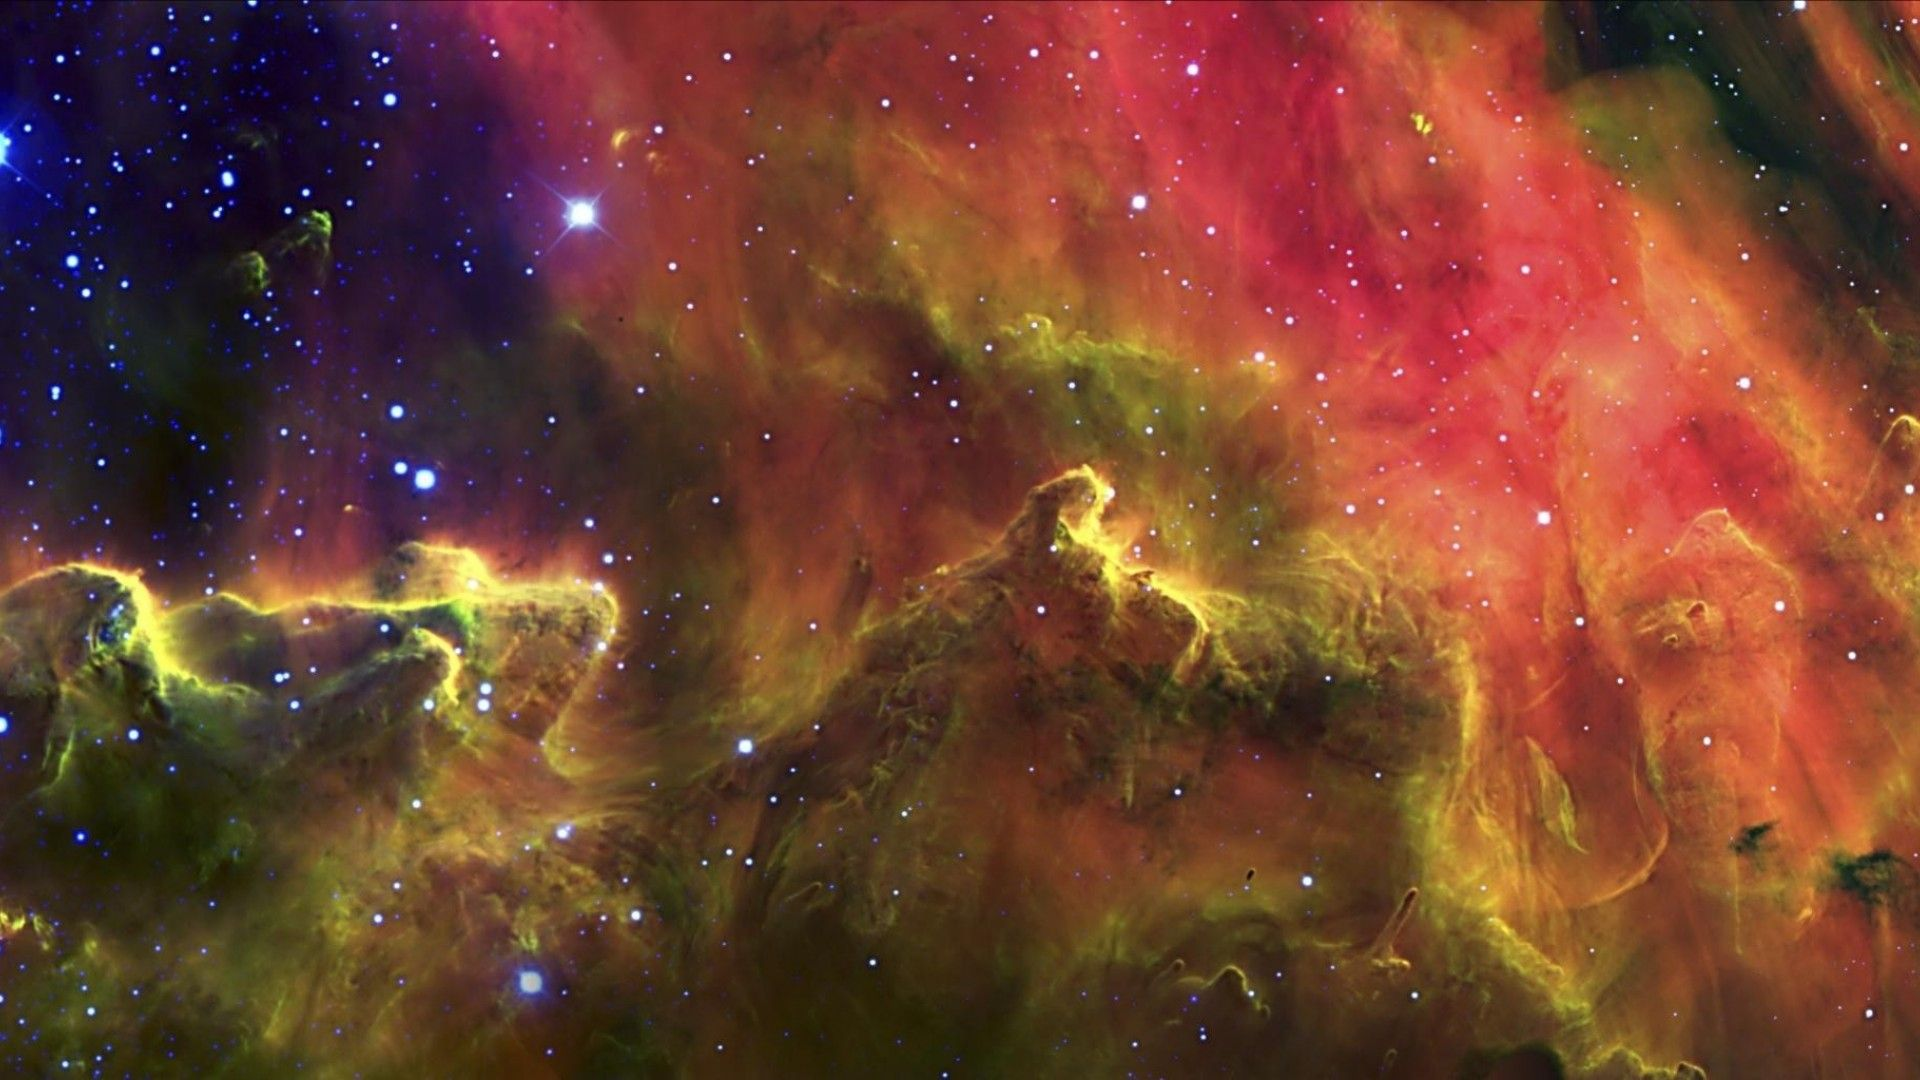 Space Wallpaper 1920X1080 Hubble Hd Cool 7 HD Wallpapers 1920x1080